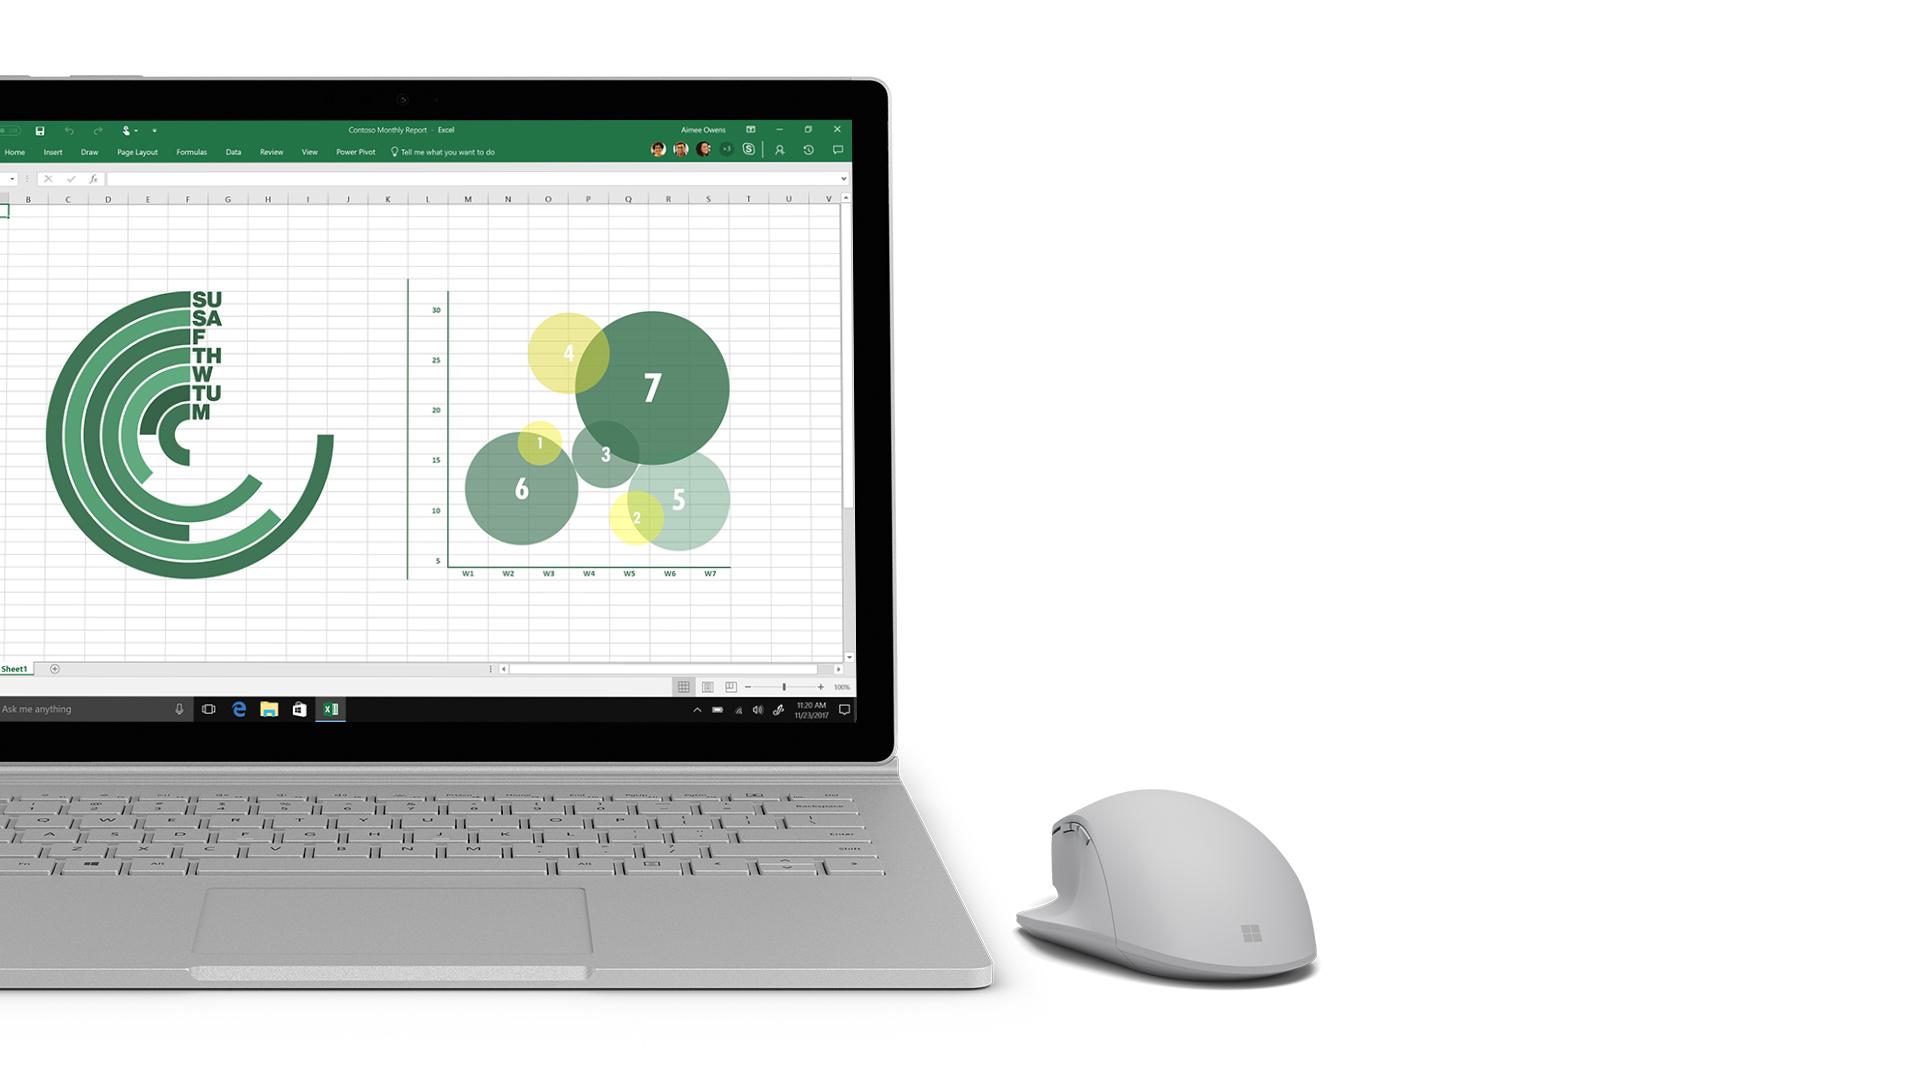 Captura de ecrã do Excel no Surface.